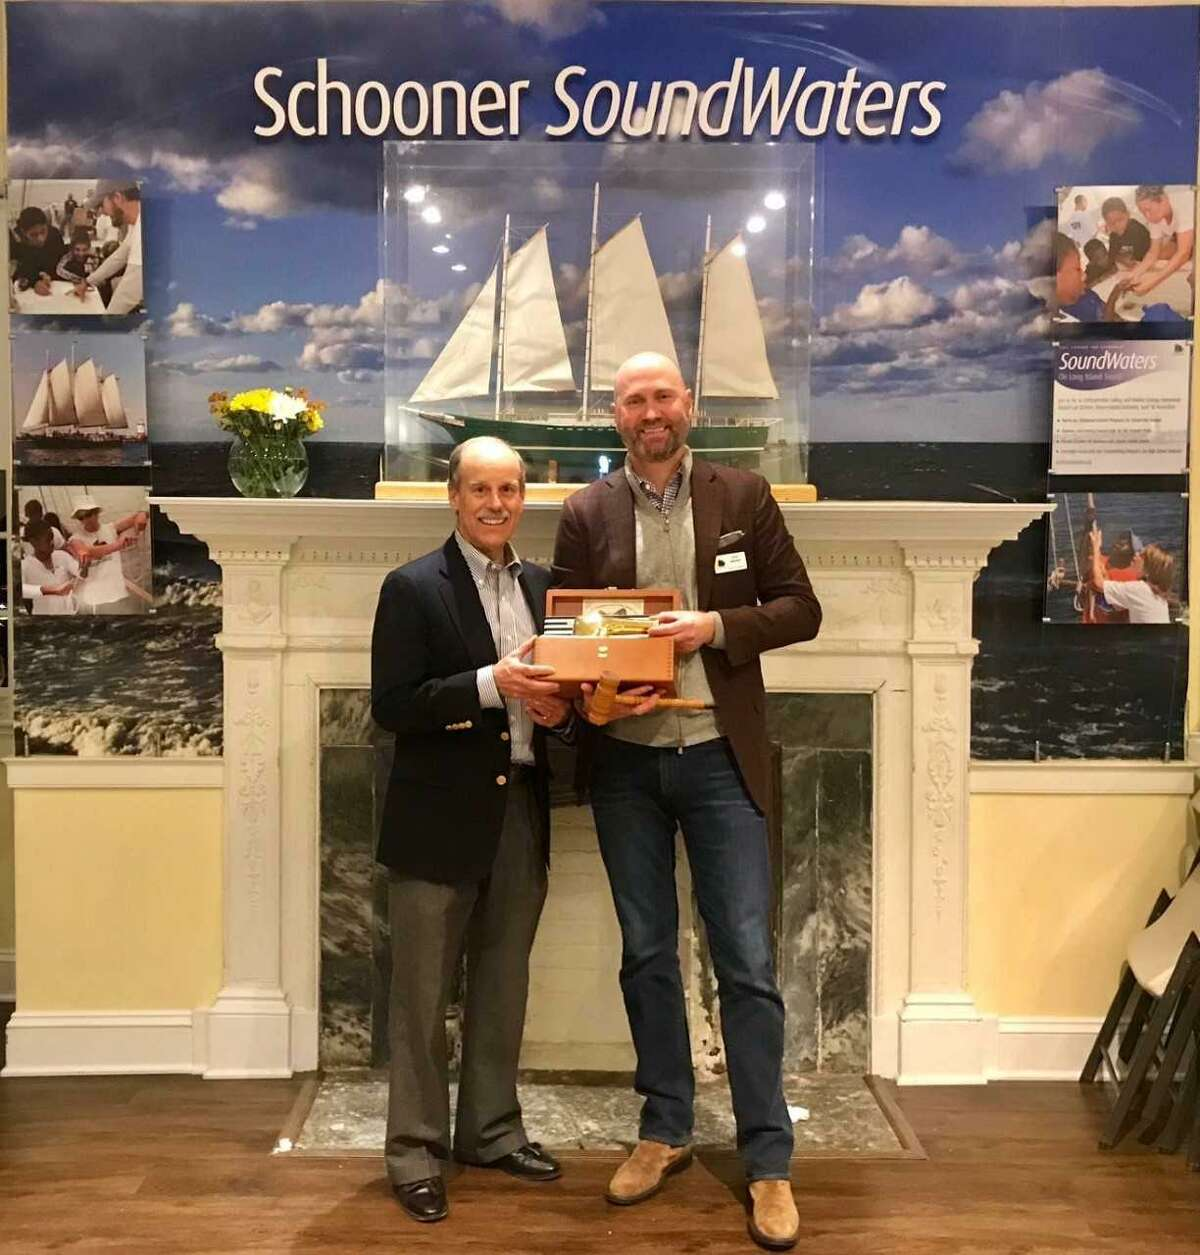 Greenwich resident Scott Mitchell, who is stepping down as chairman of SoundWaters, hands the wheel to the incoming chairman, Doug Bora of Darien.